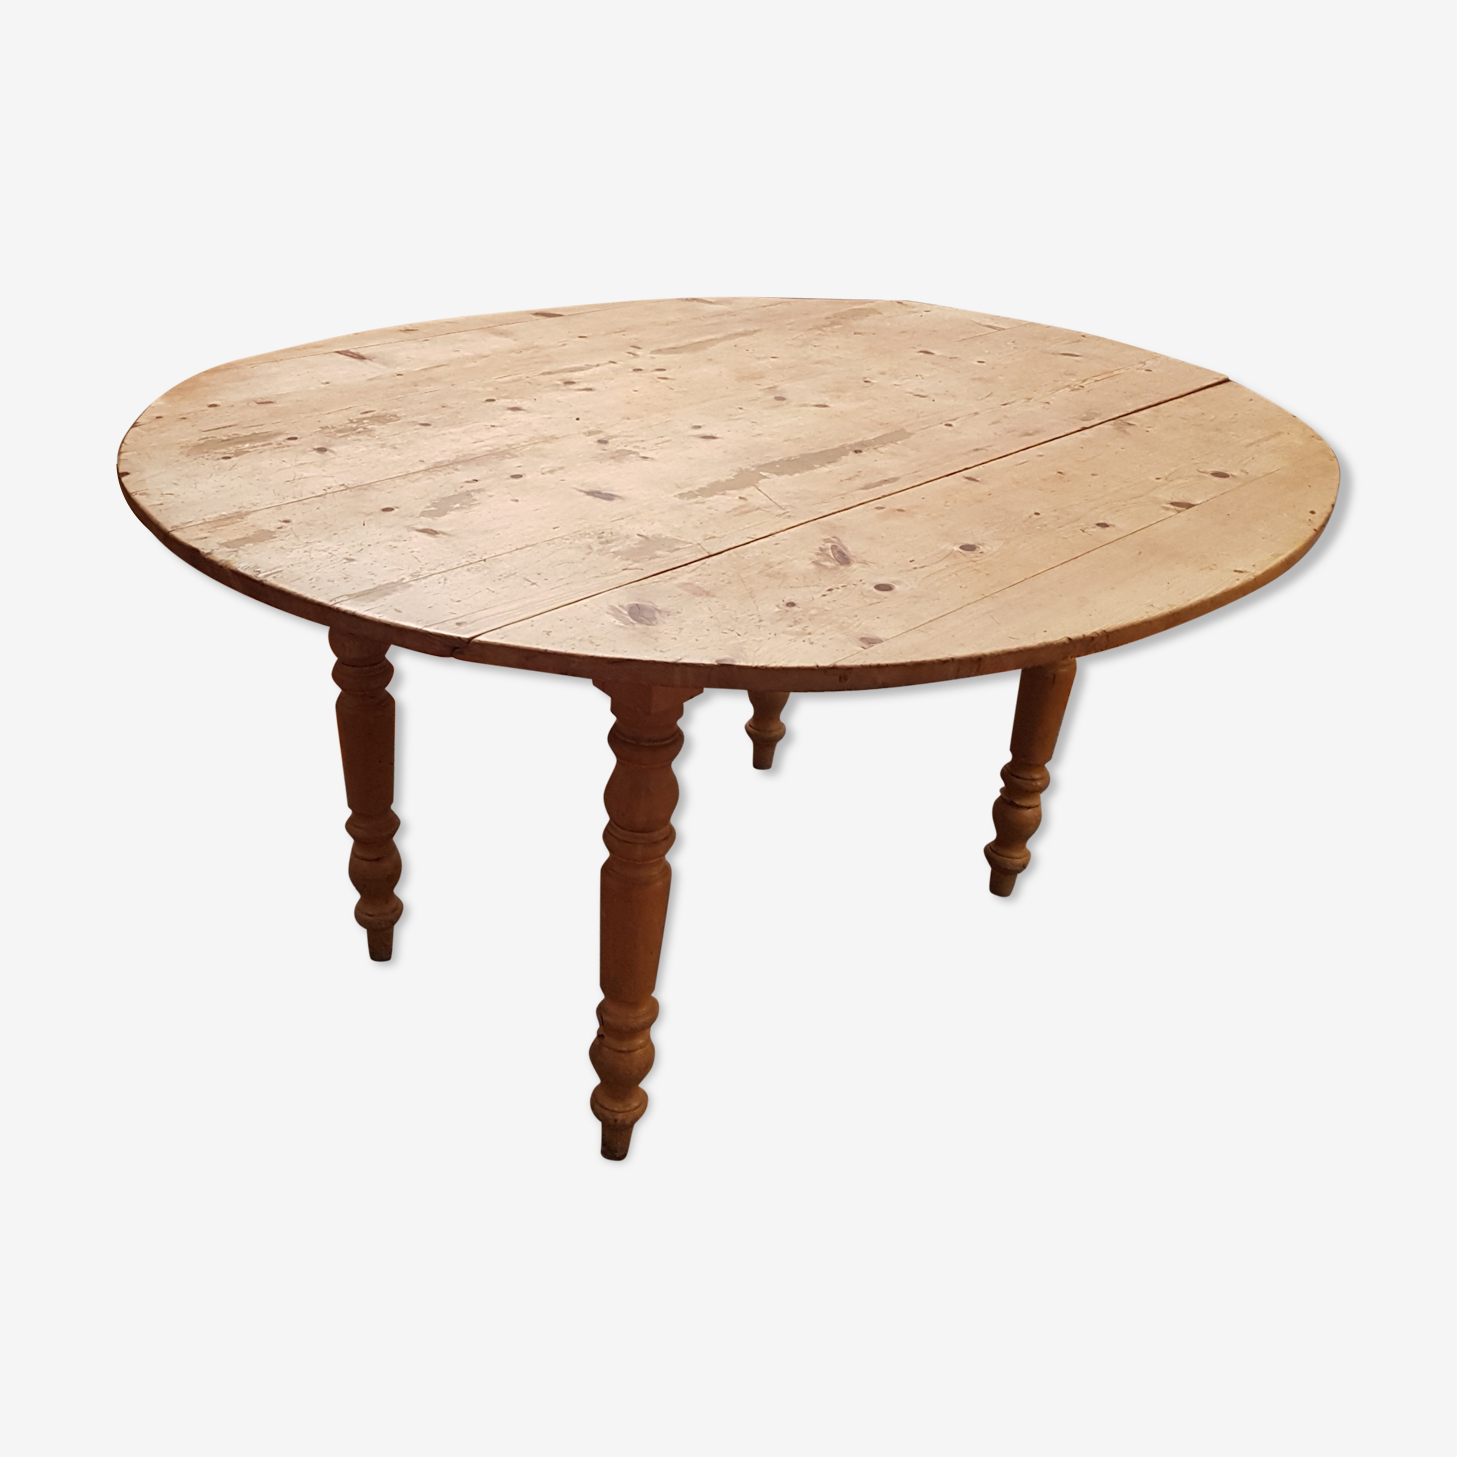 Old English oval pine table